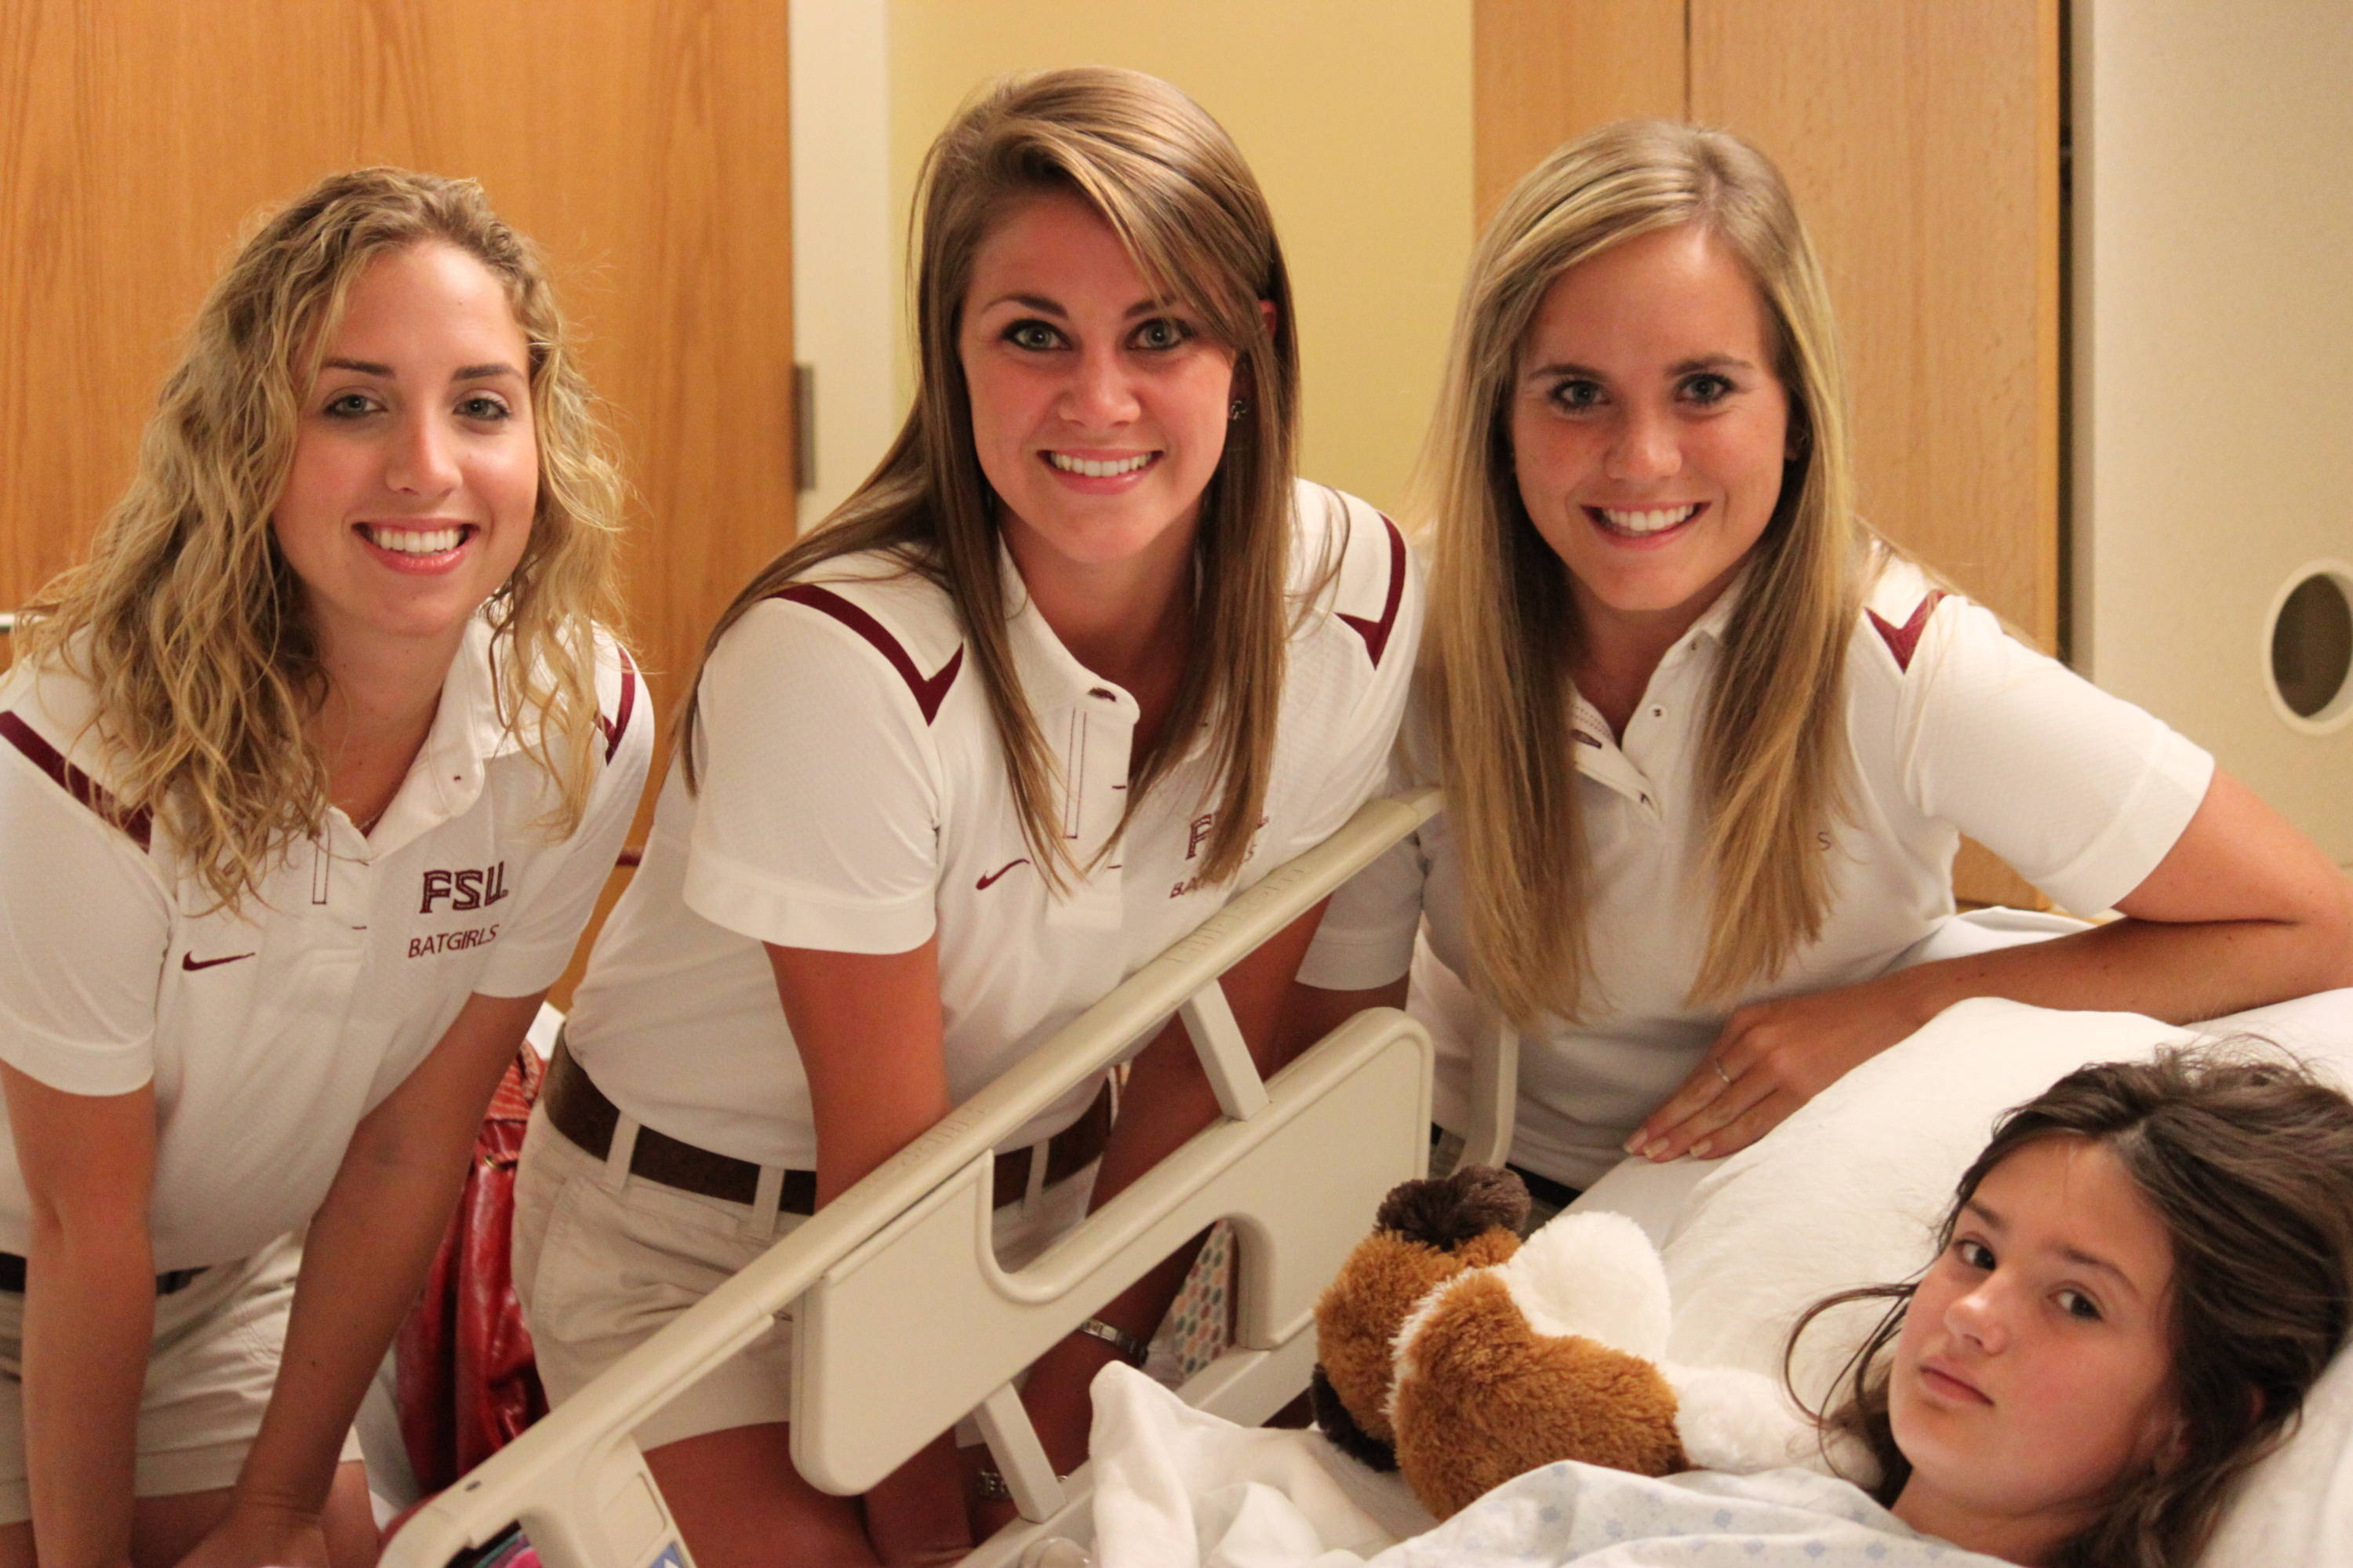 Bailey, Bret and Heidi, members of the Bat Girls, visit with children during a hospital visit on Tuesday morning.